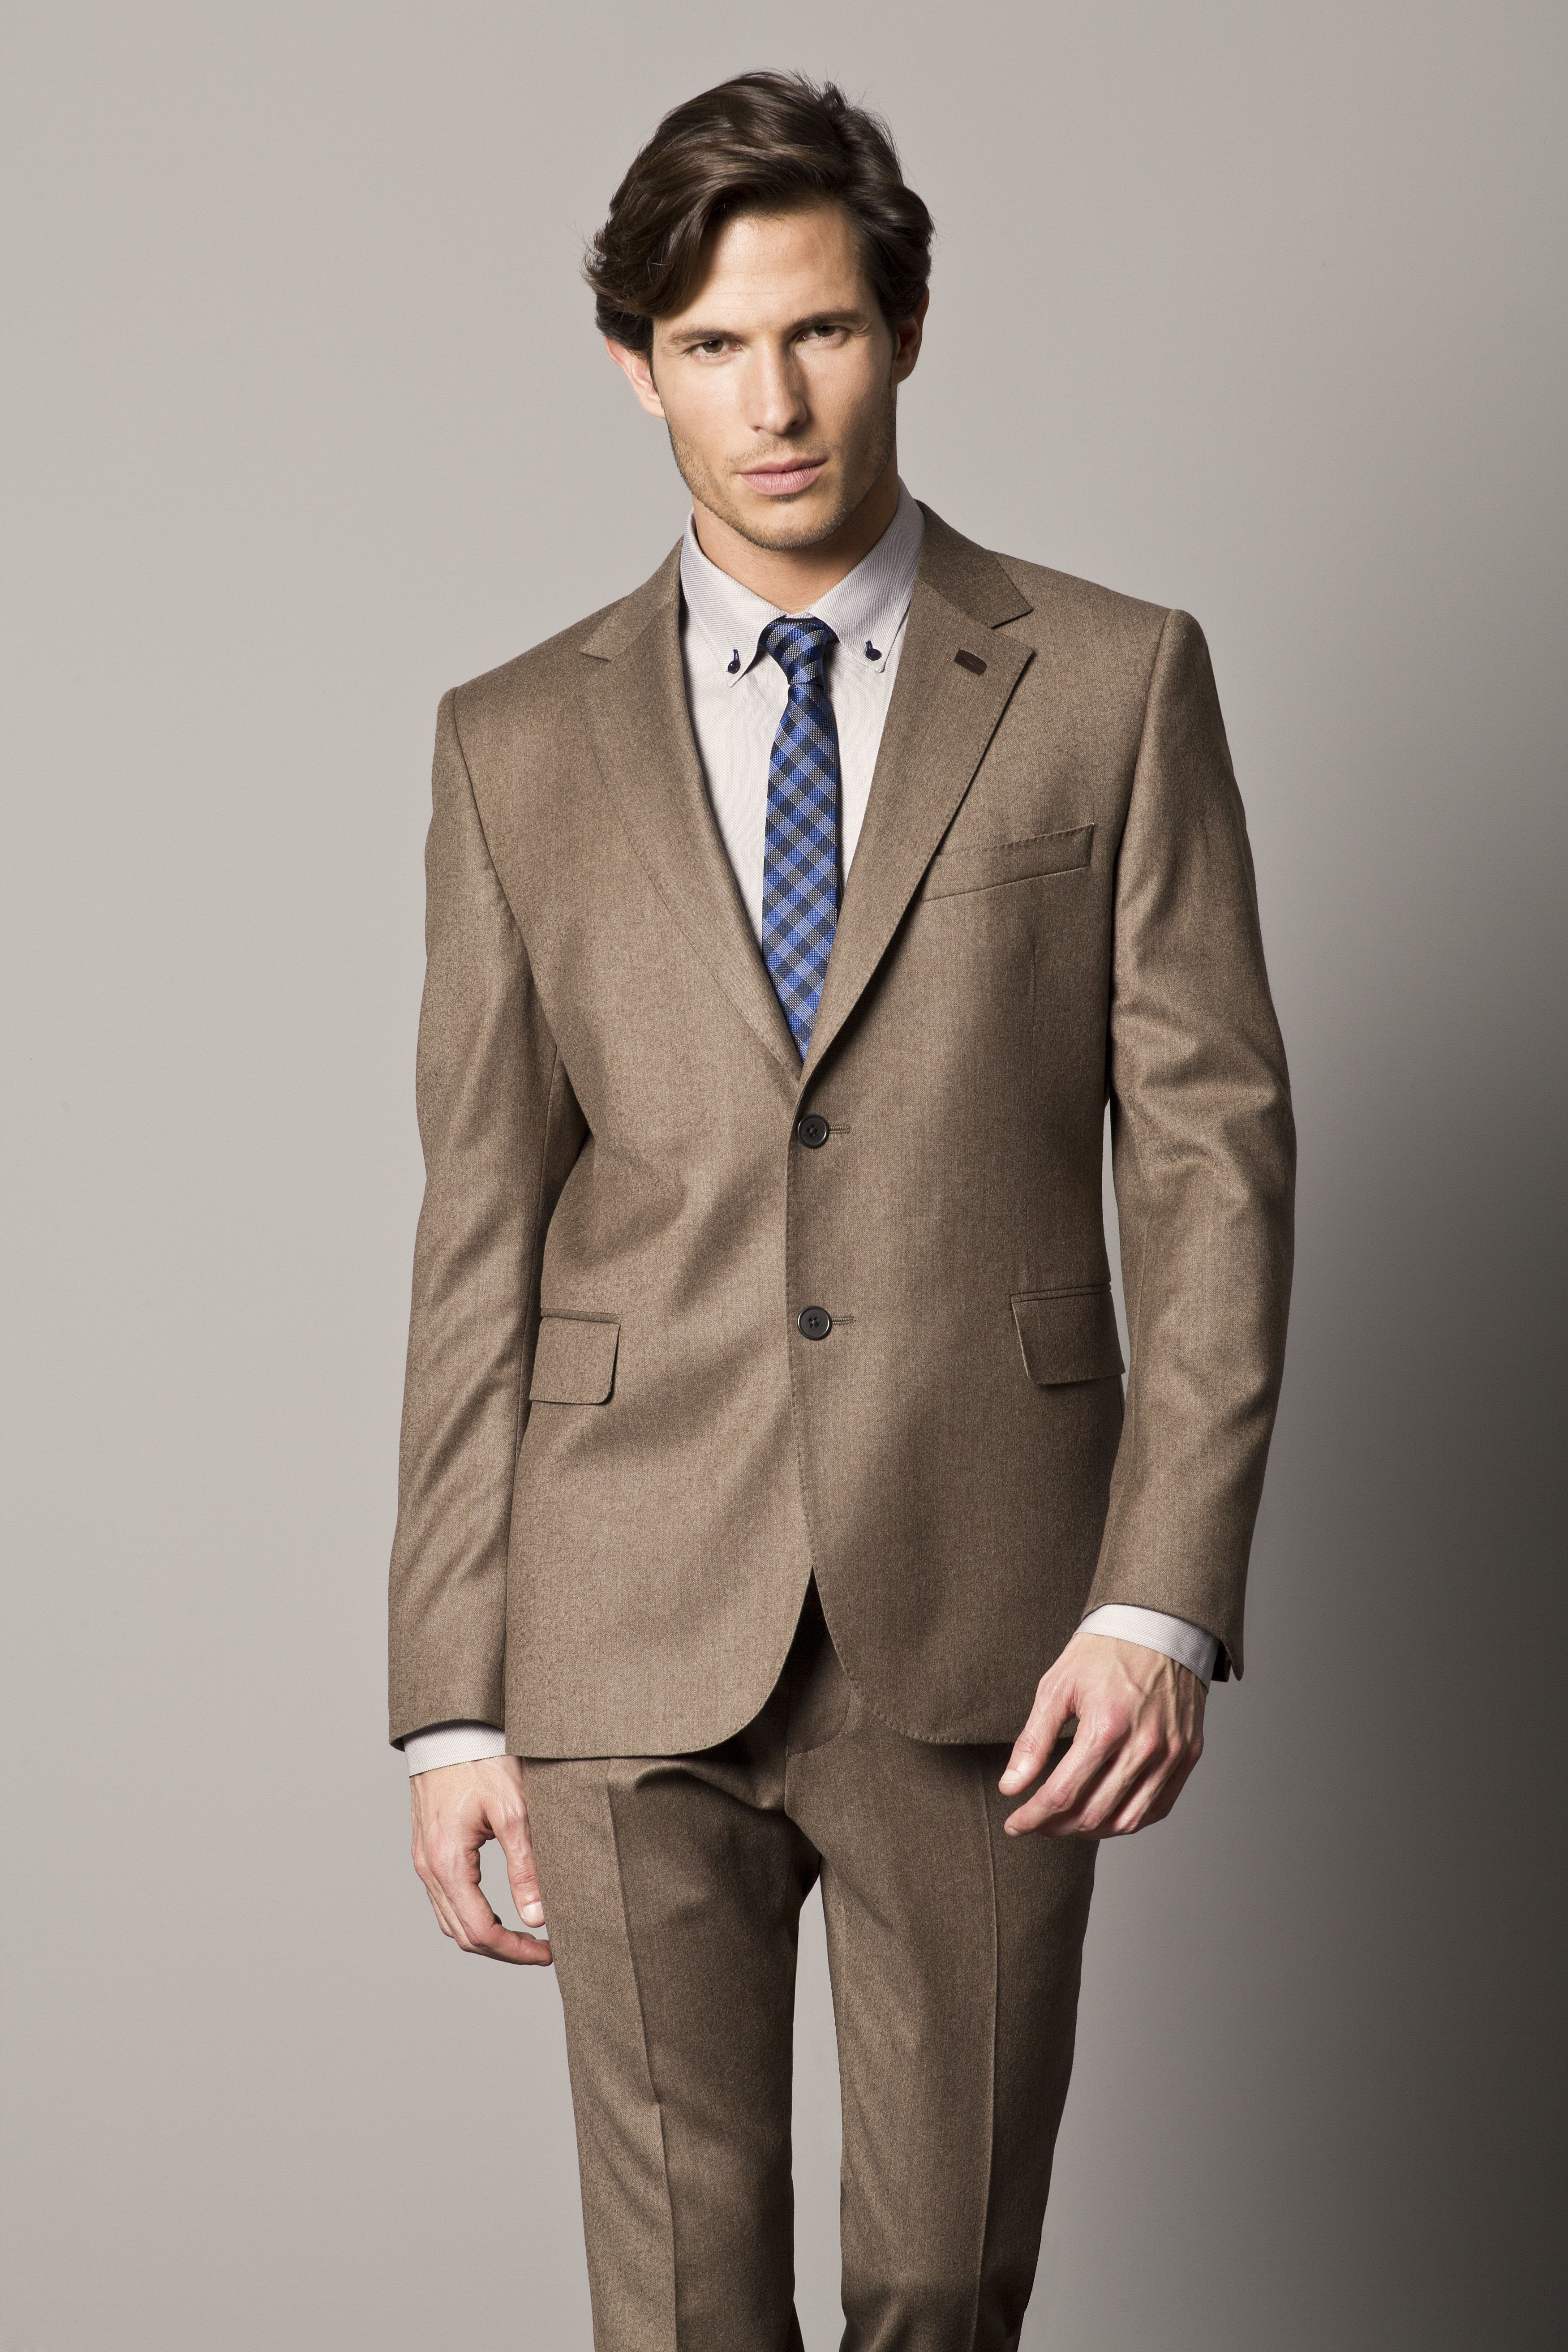 suit brown brown, al9mg7p1yos.gq is an online store offering some of the best Mens Suits, Tuxedos, Discount Zoot Suits and lot more.